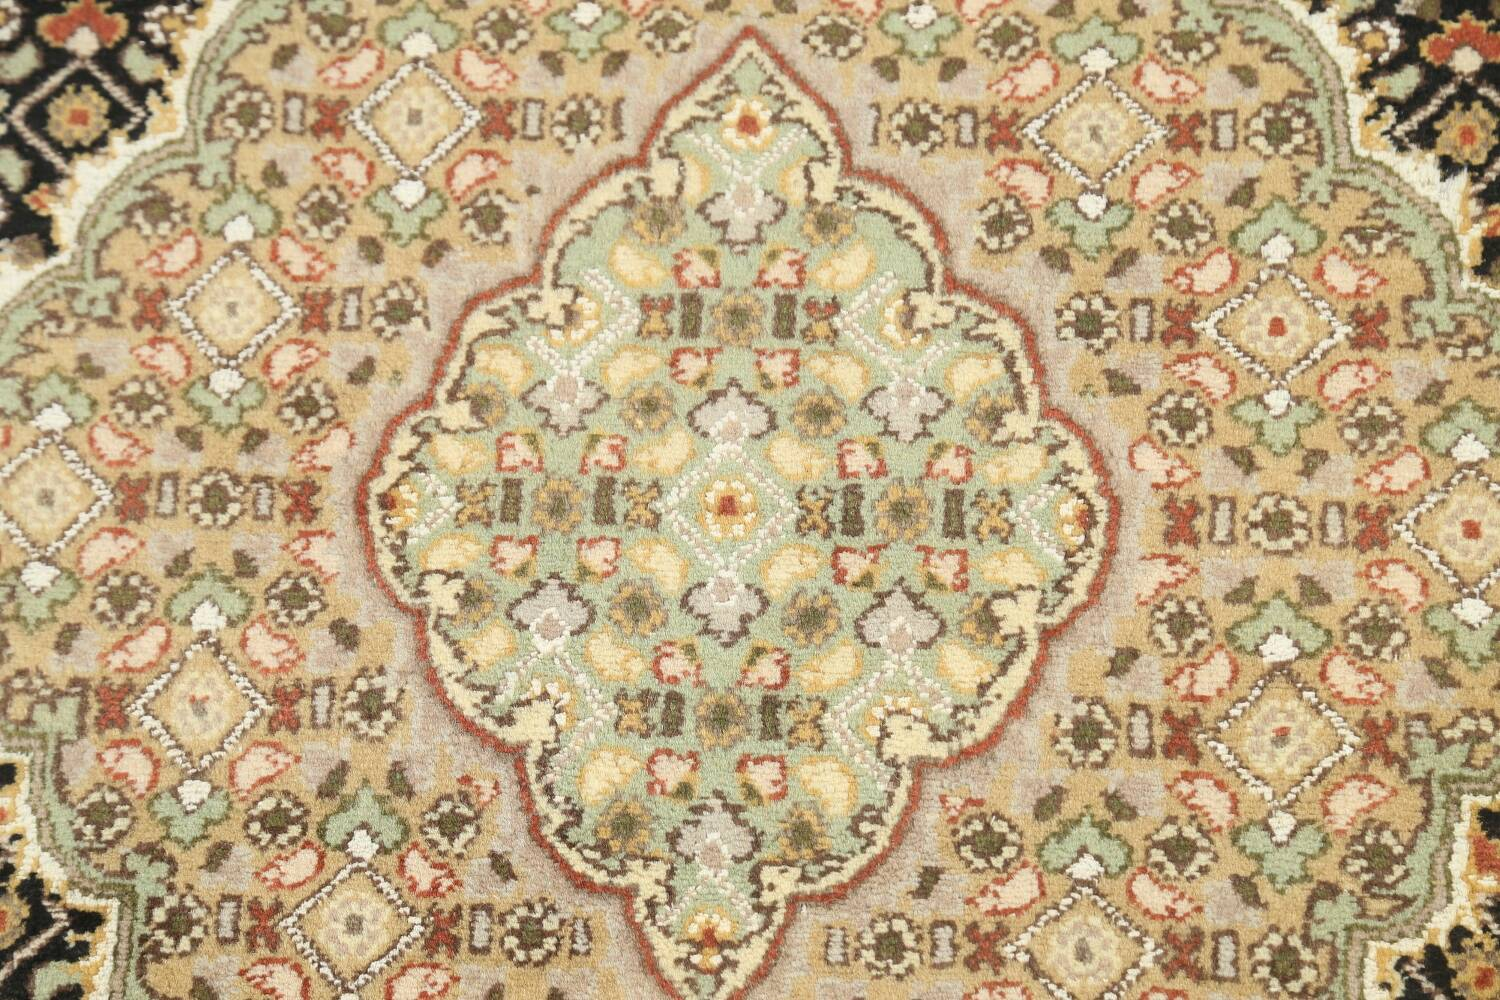 100% Vegetable Dye Tabriz Mahi Oriental Area Rug 4x6 image 8